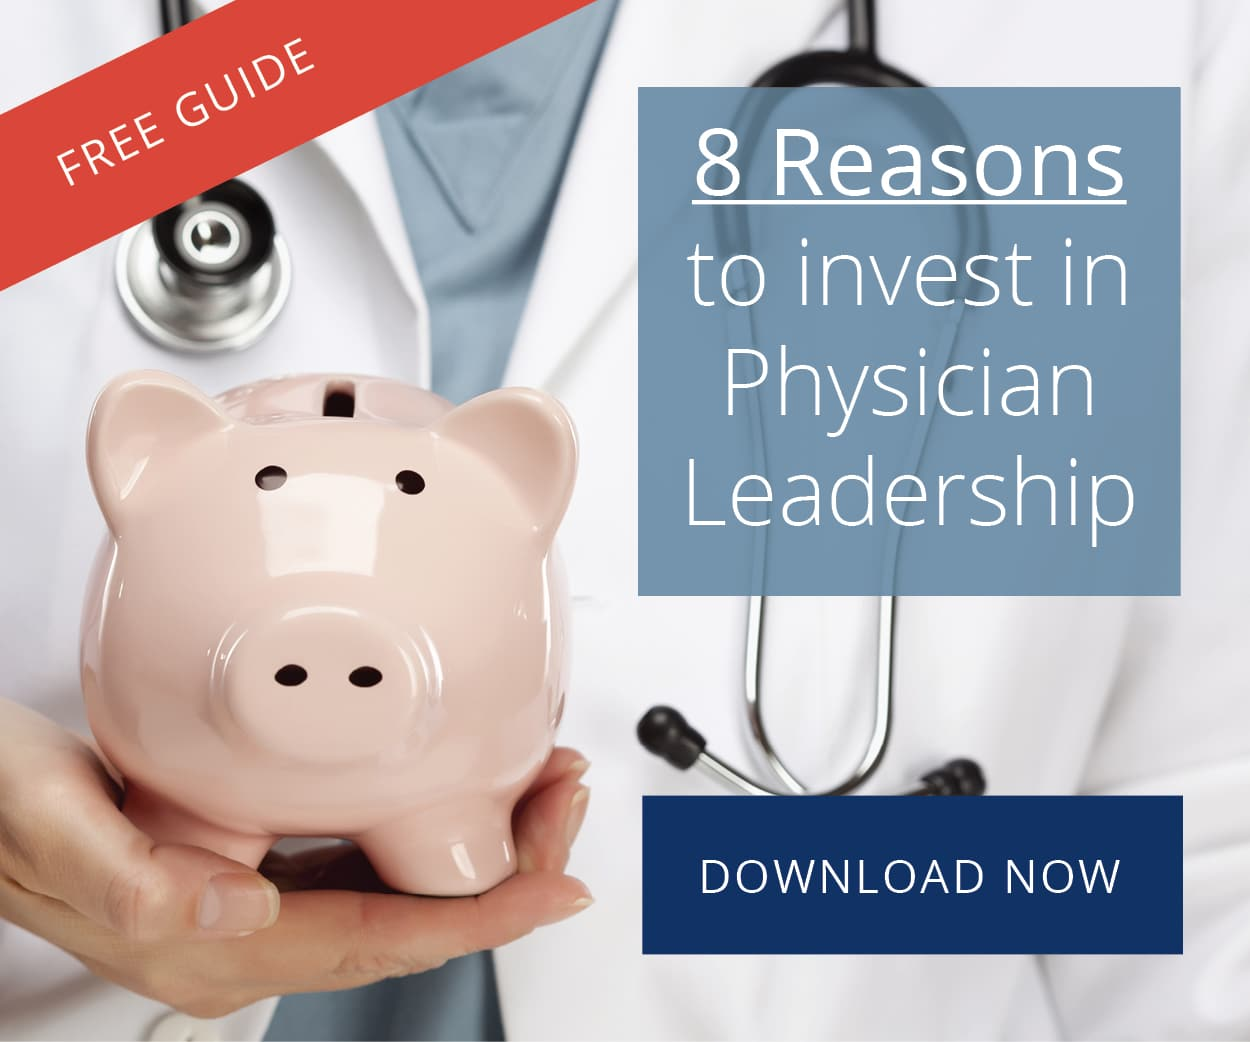 8 Reasons to Invest in Physician Leadership | CTI